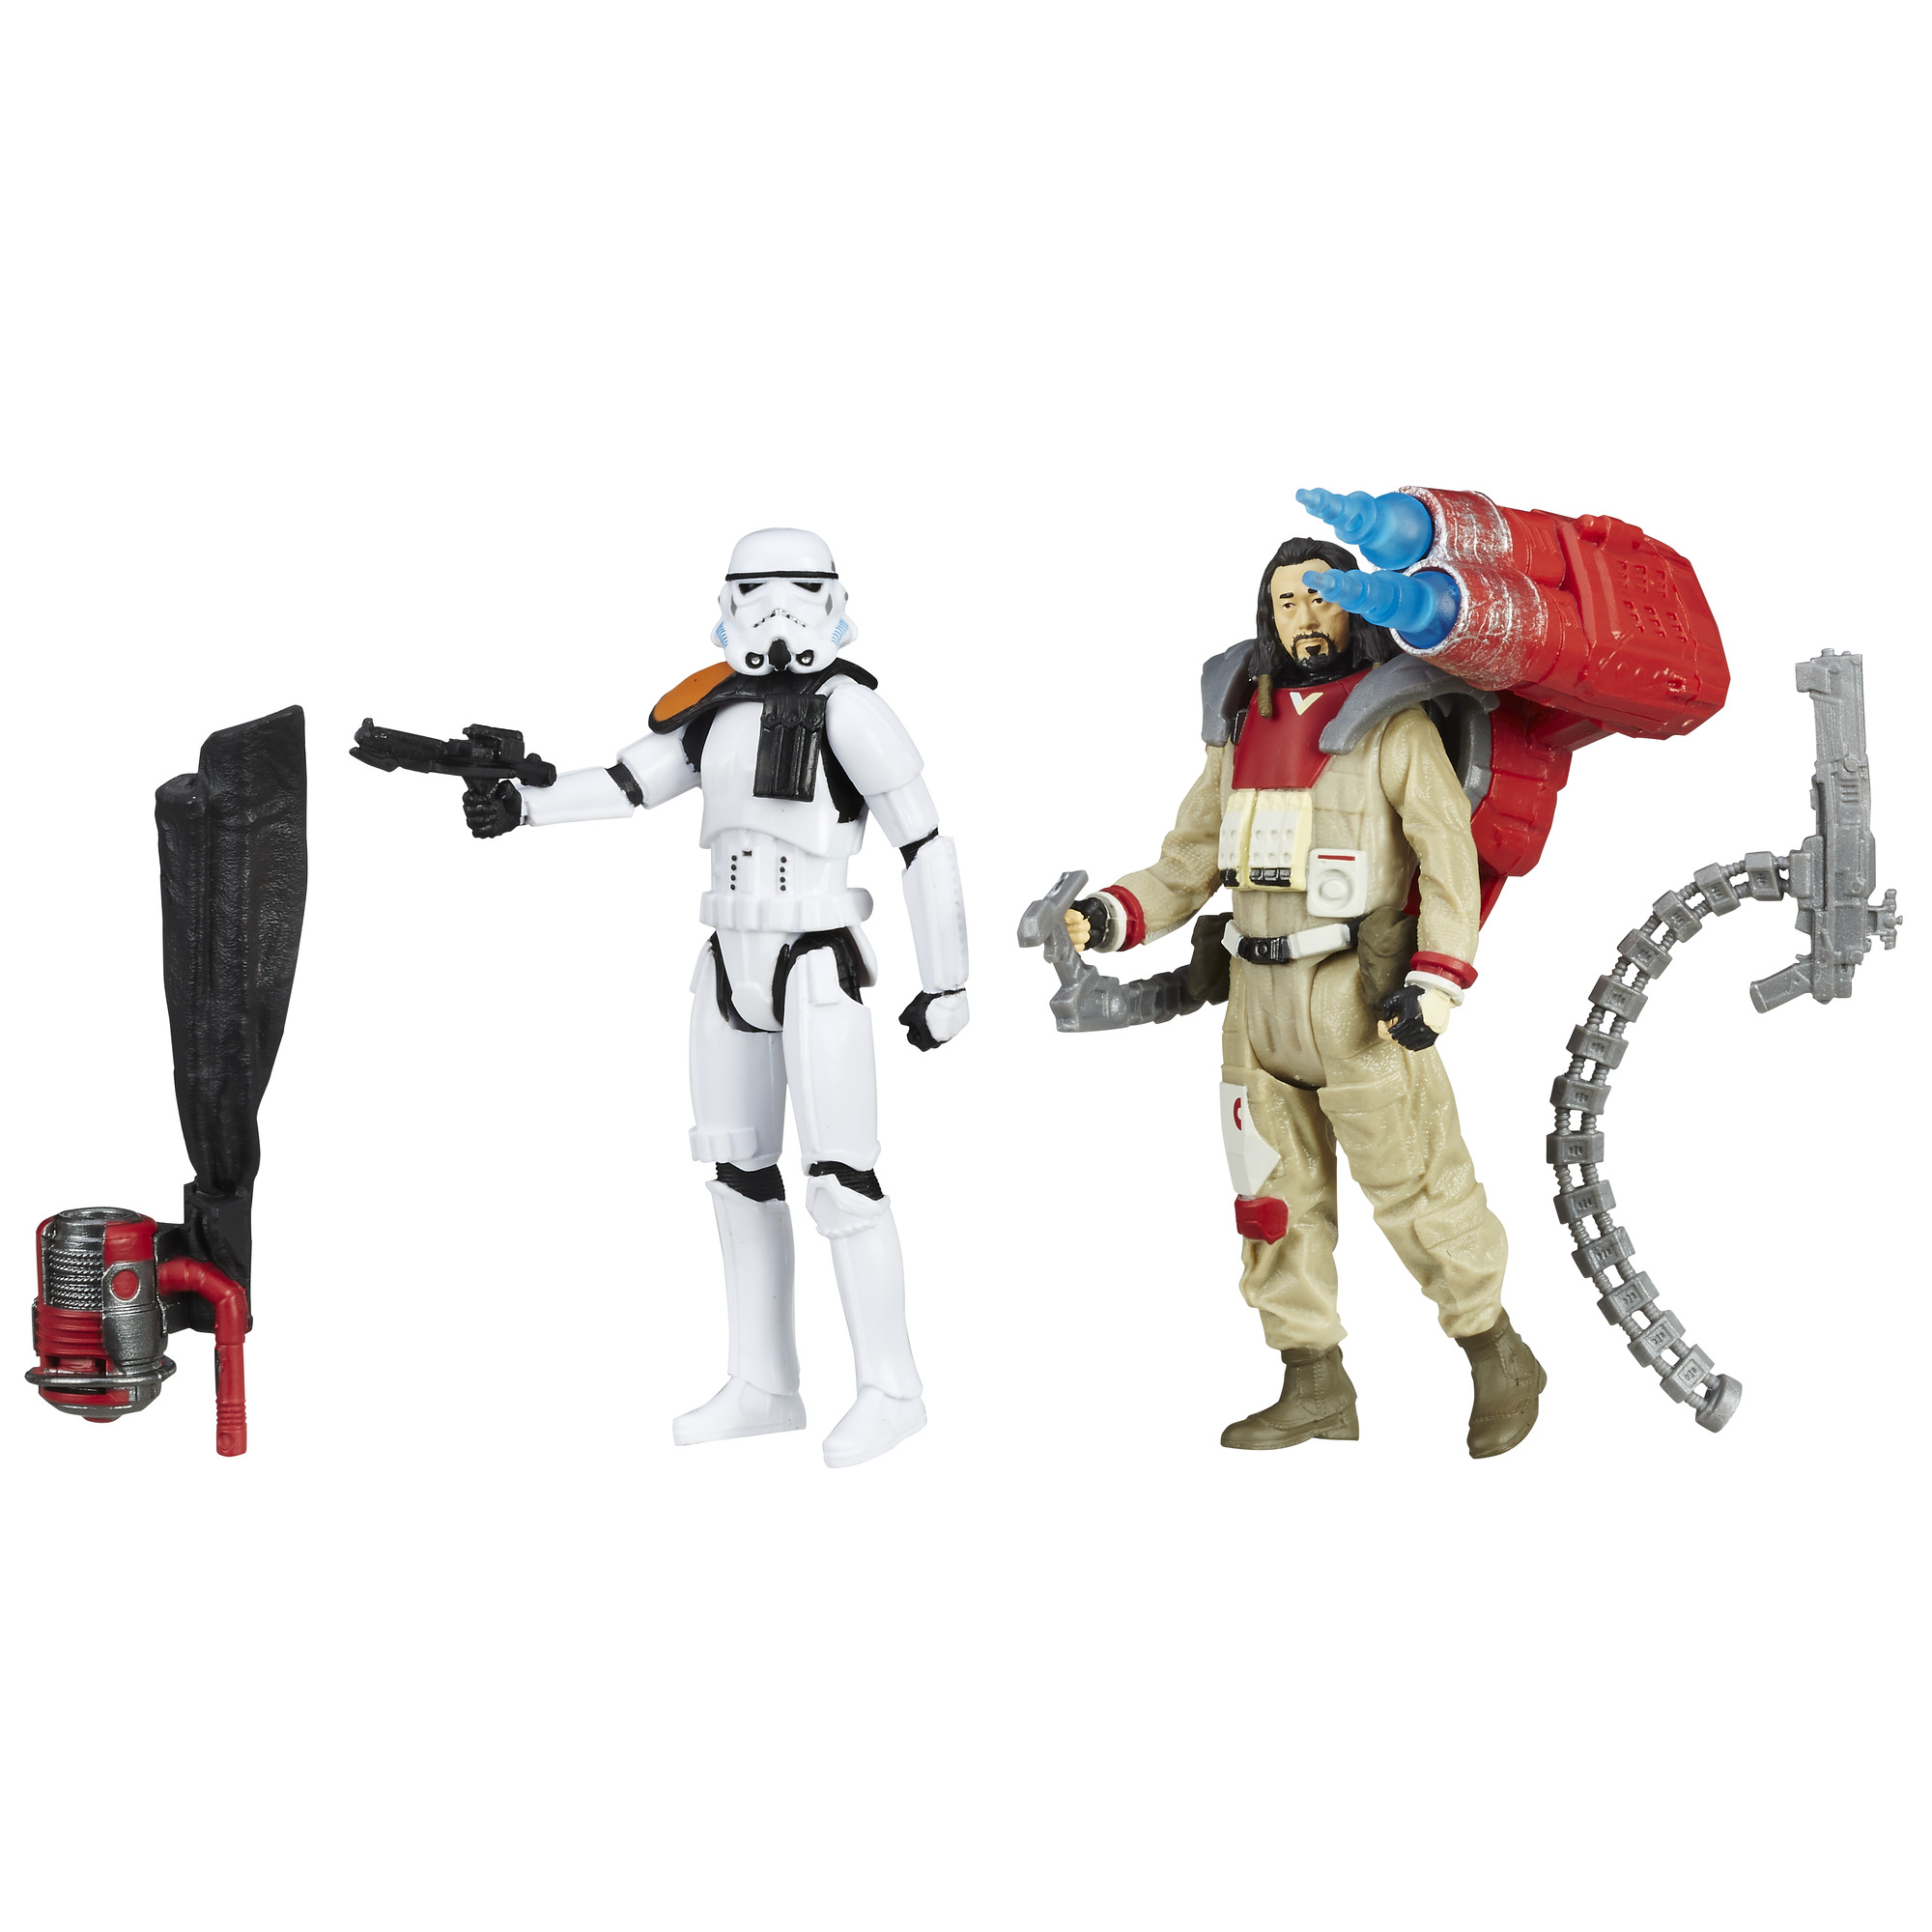 Star Wars Rogue One Baze Malbus VS. Imperial Stormtrooper, 3.75-Inches PartNumber: 004W007284792015P